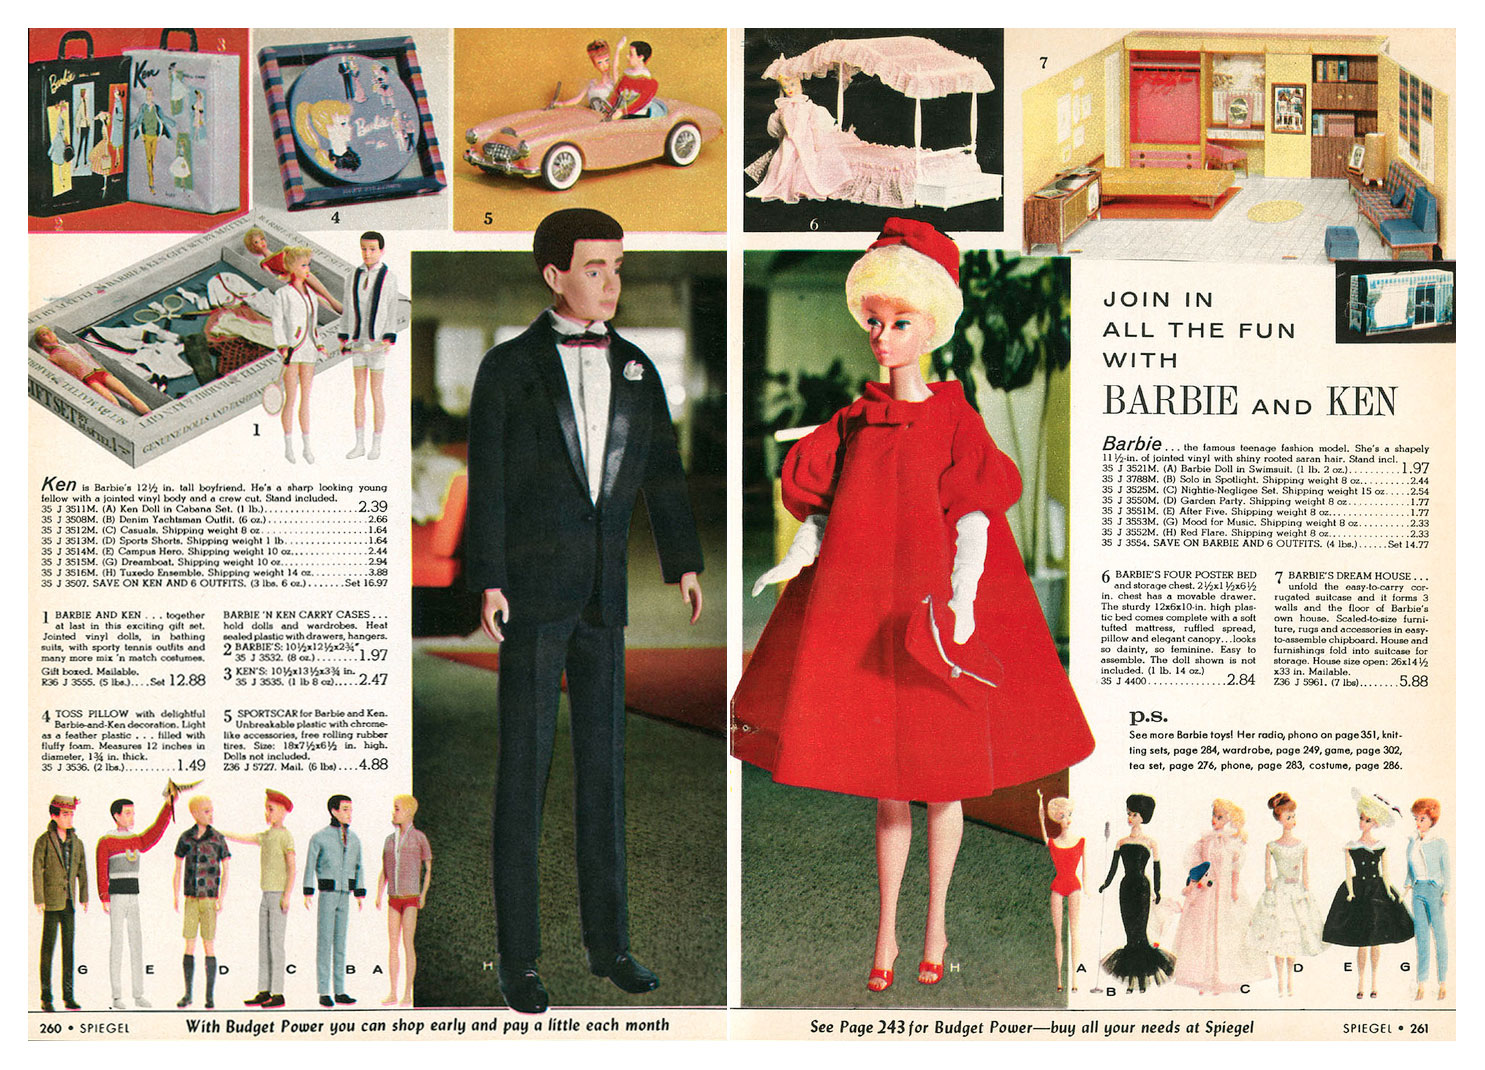 From 1962 Spiegel Christmas catalogue